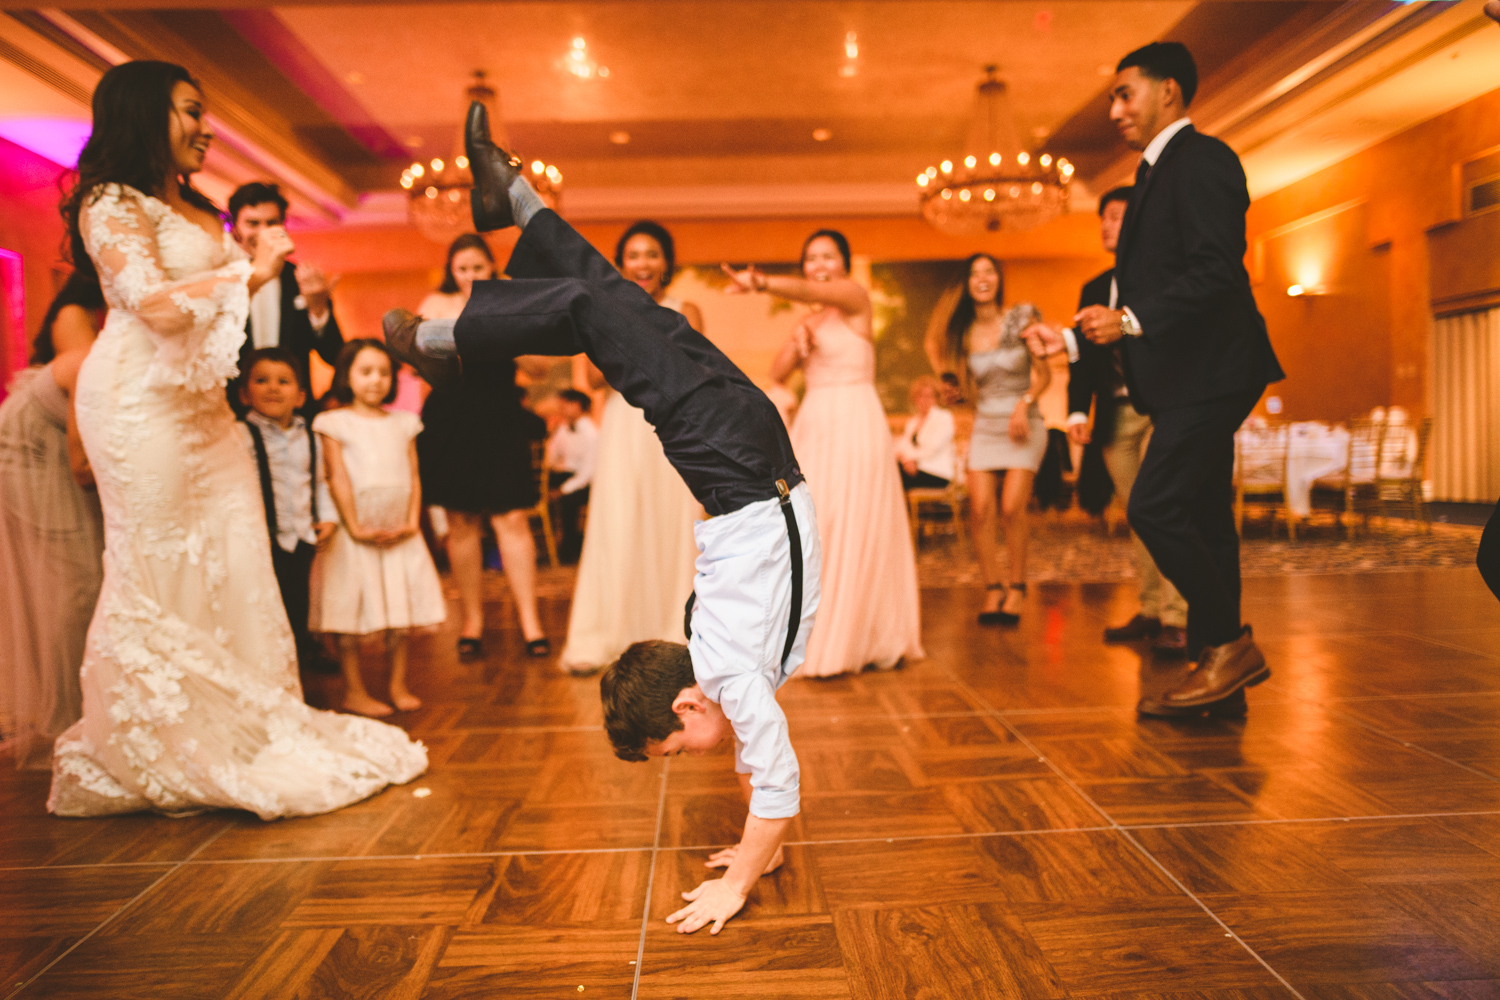 021 kid does a handstand at a military wedding.jpg